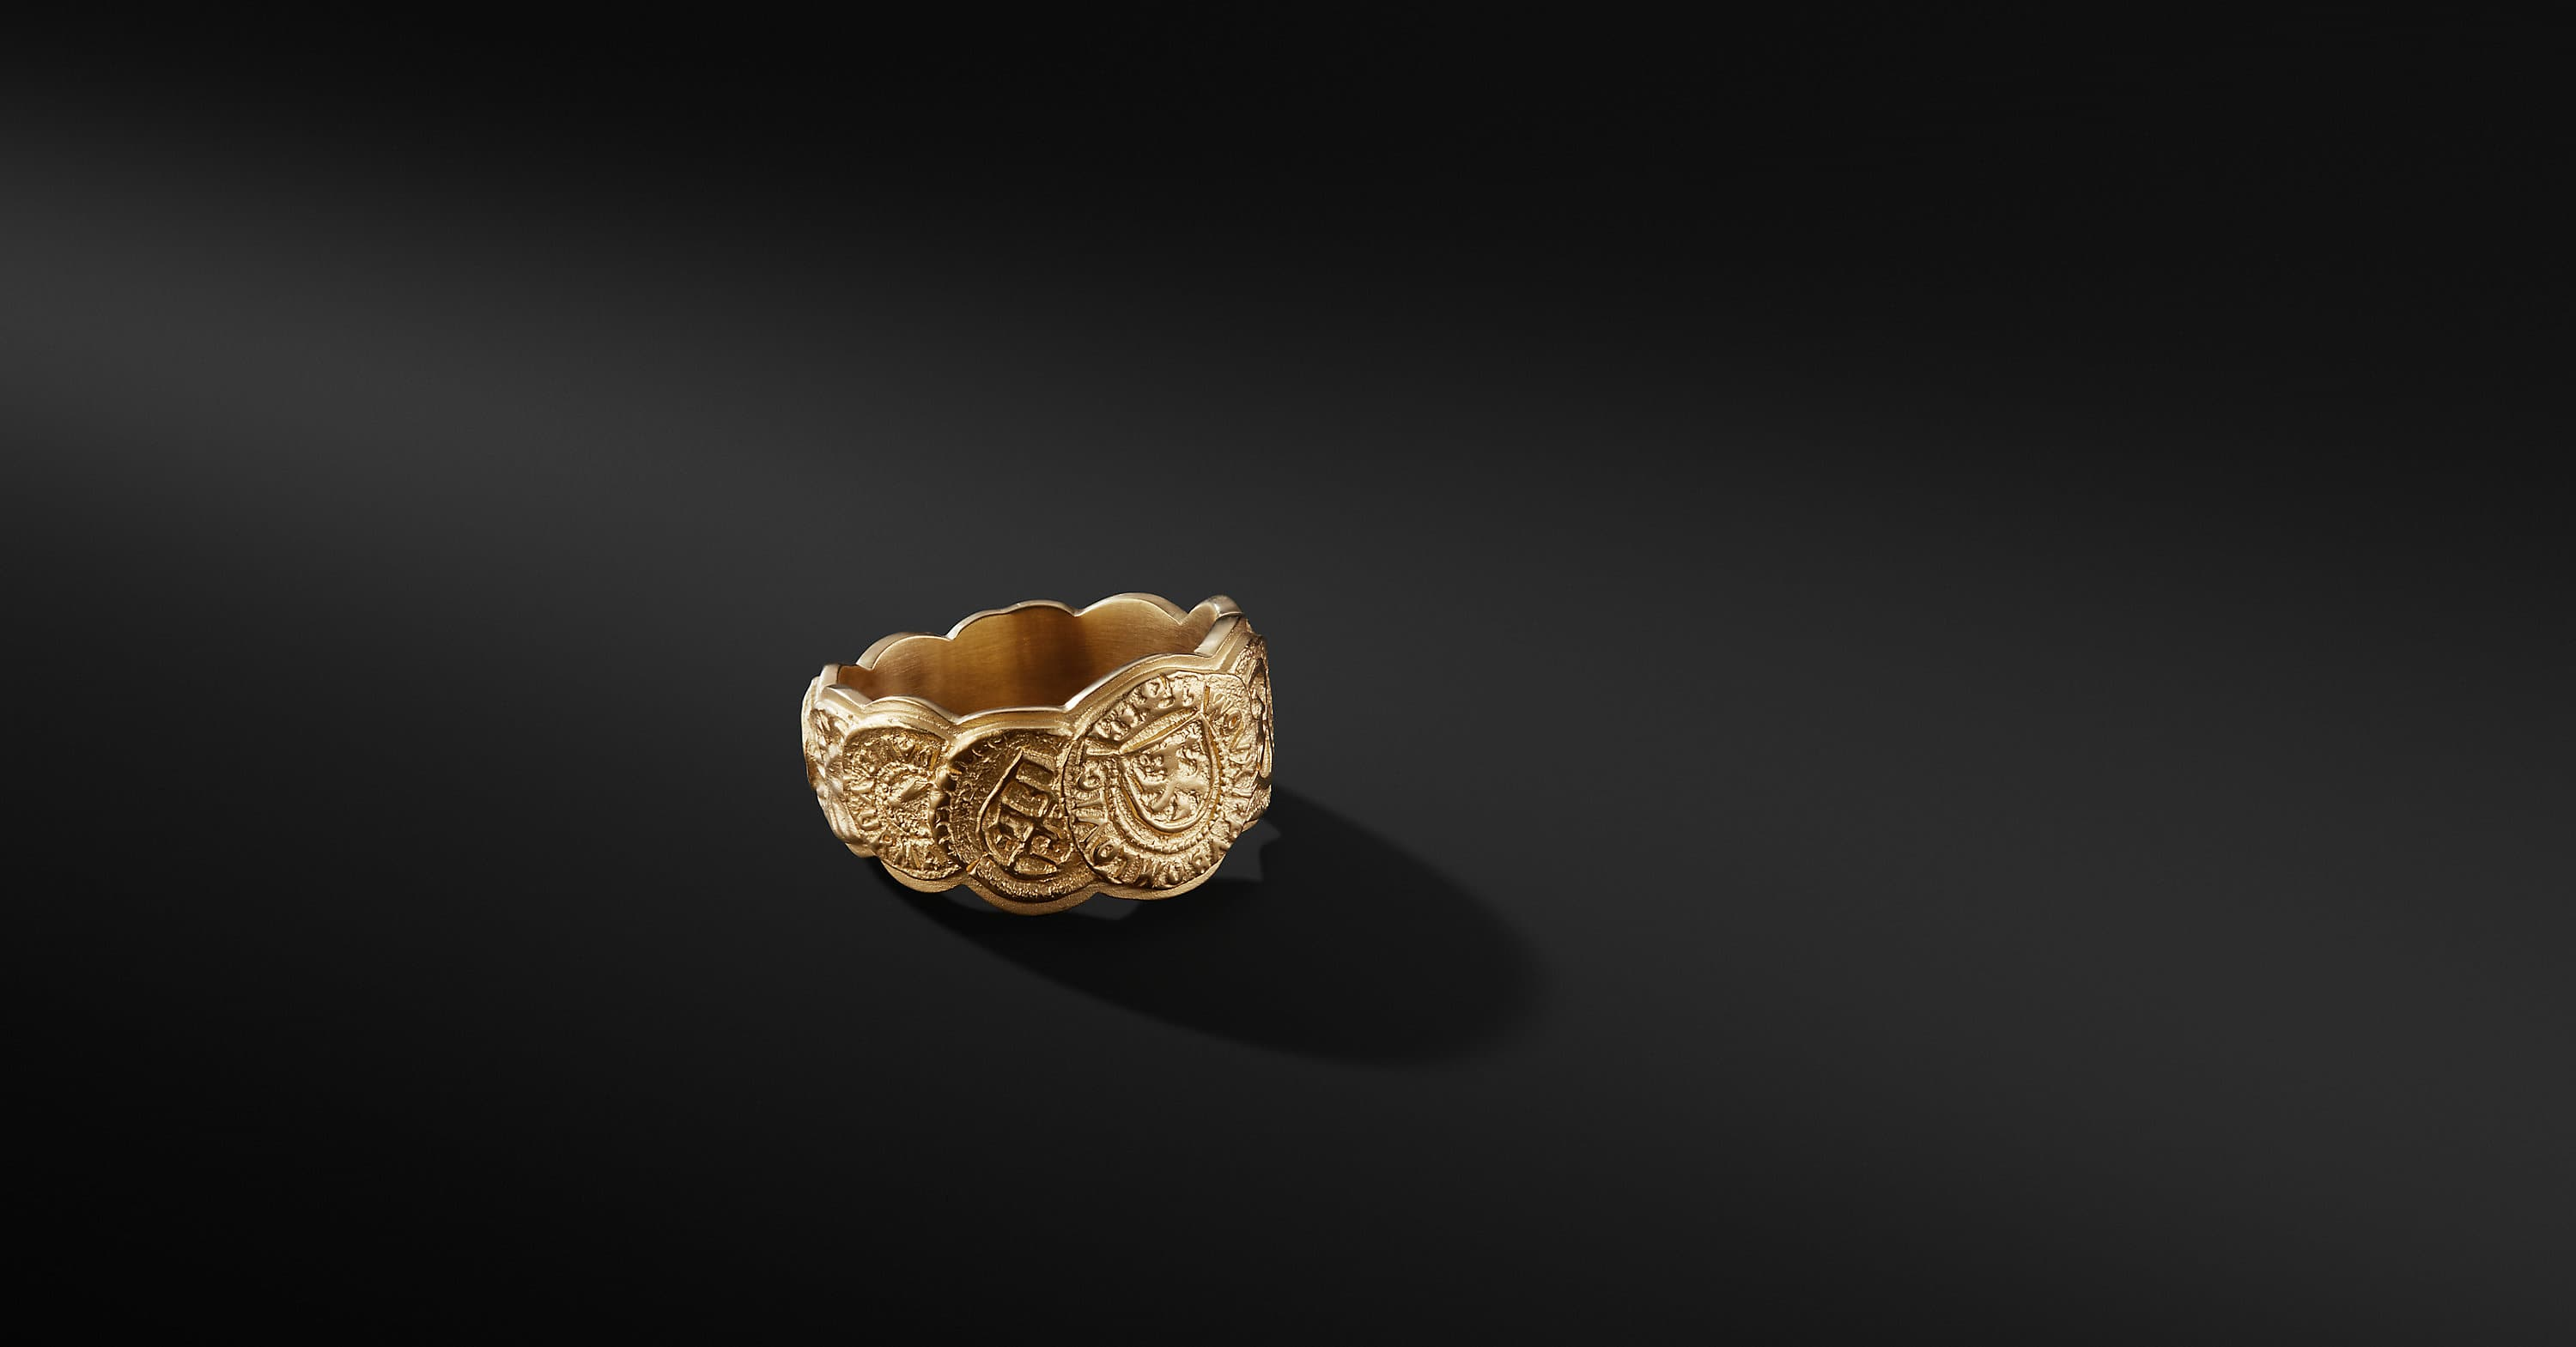 Shipwreck Coin Band Ring in 22K Gold, 12mm